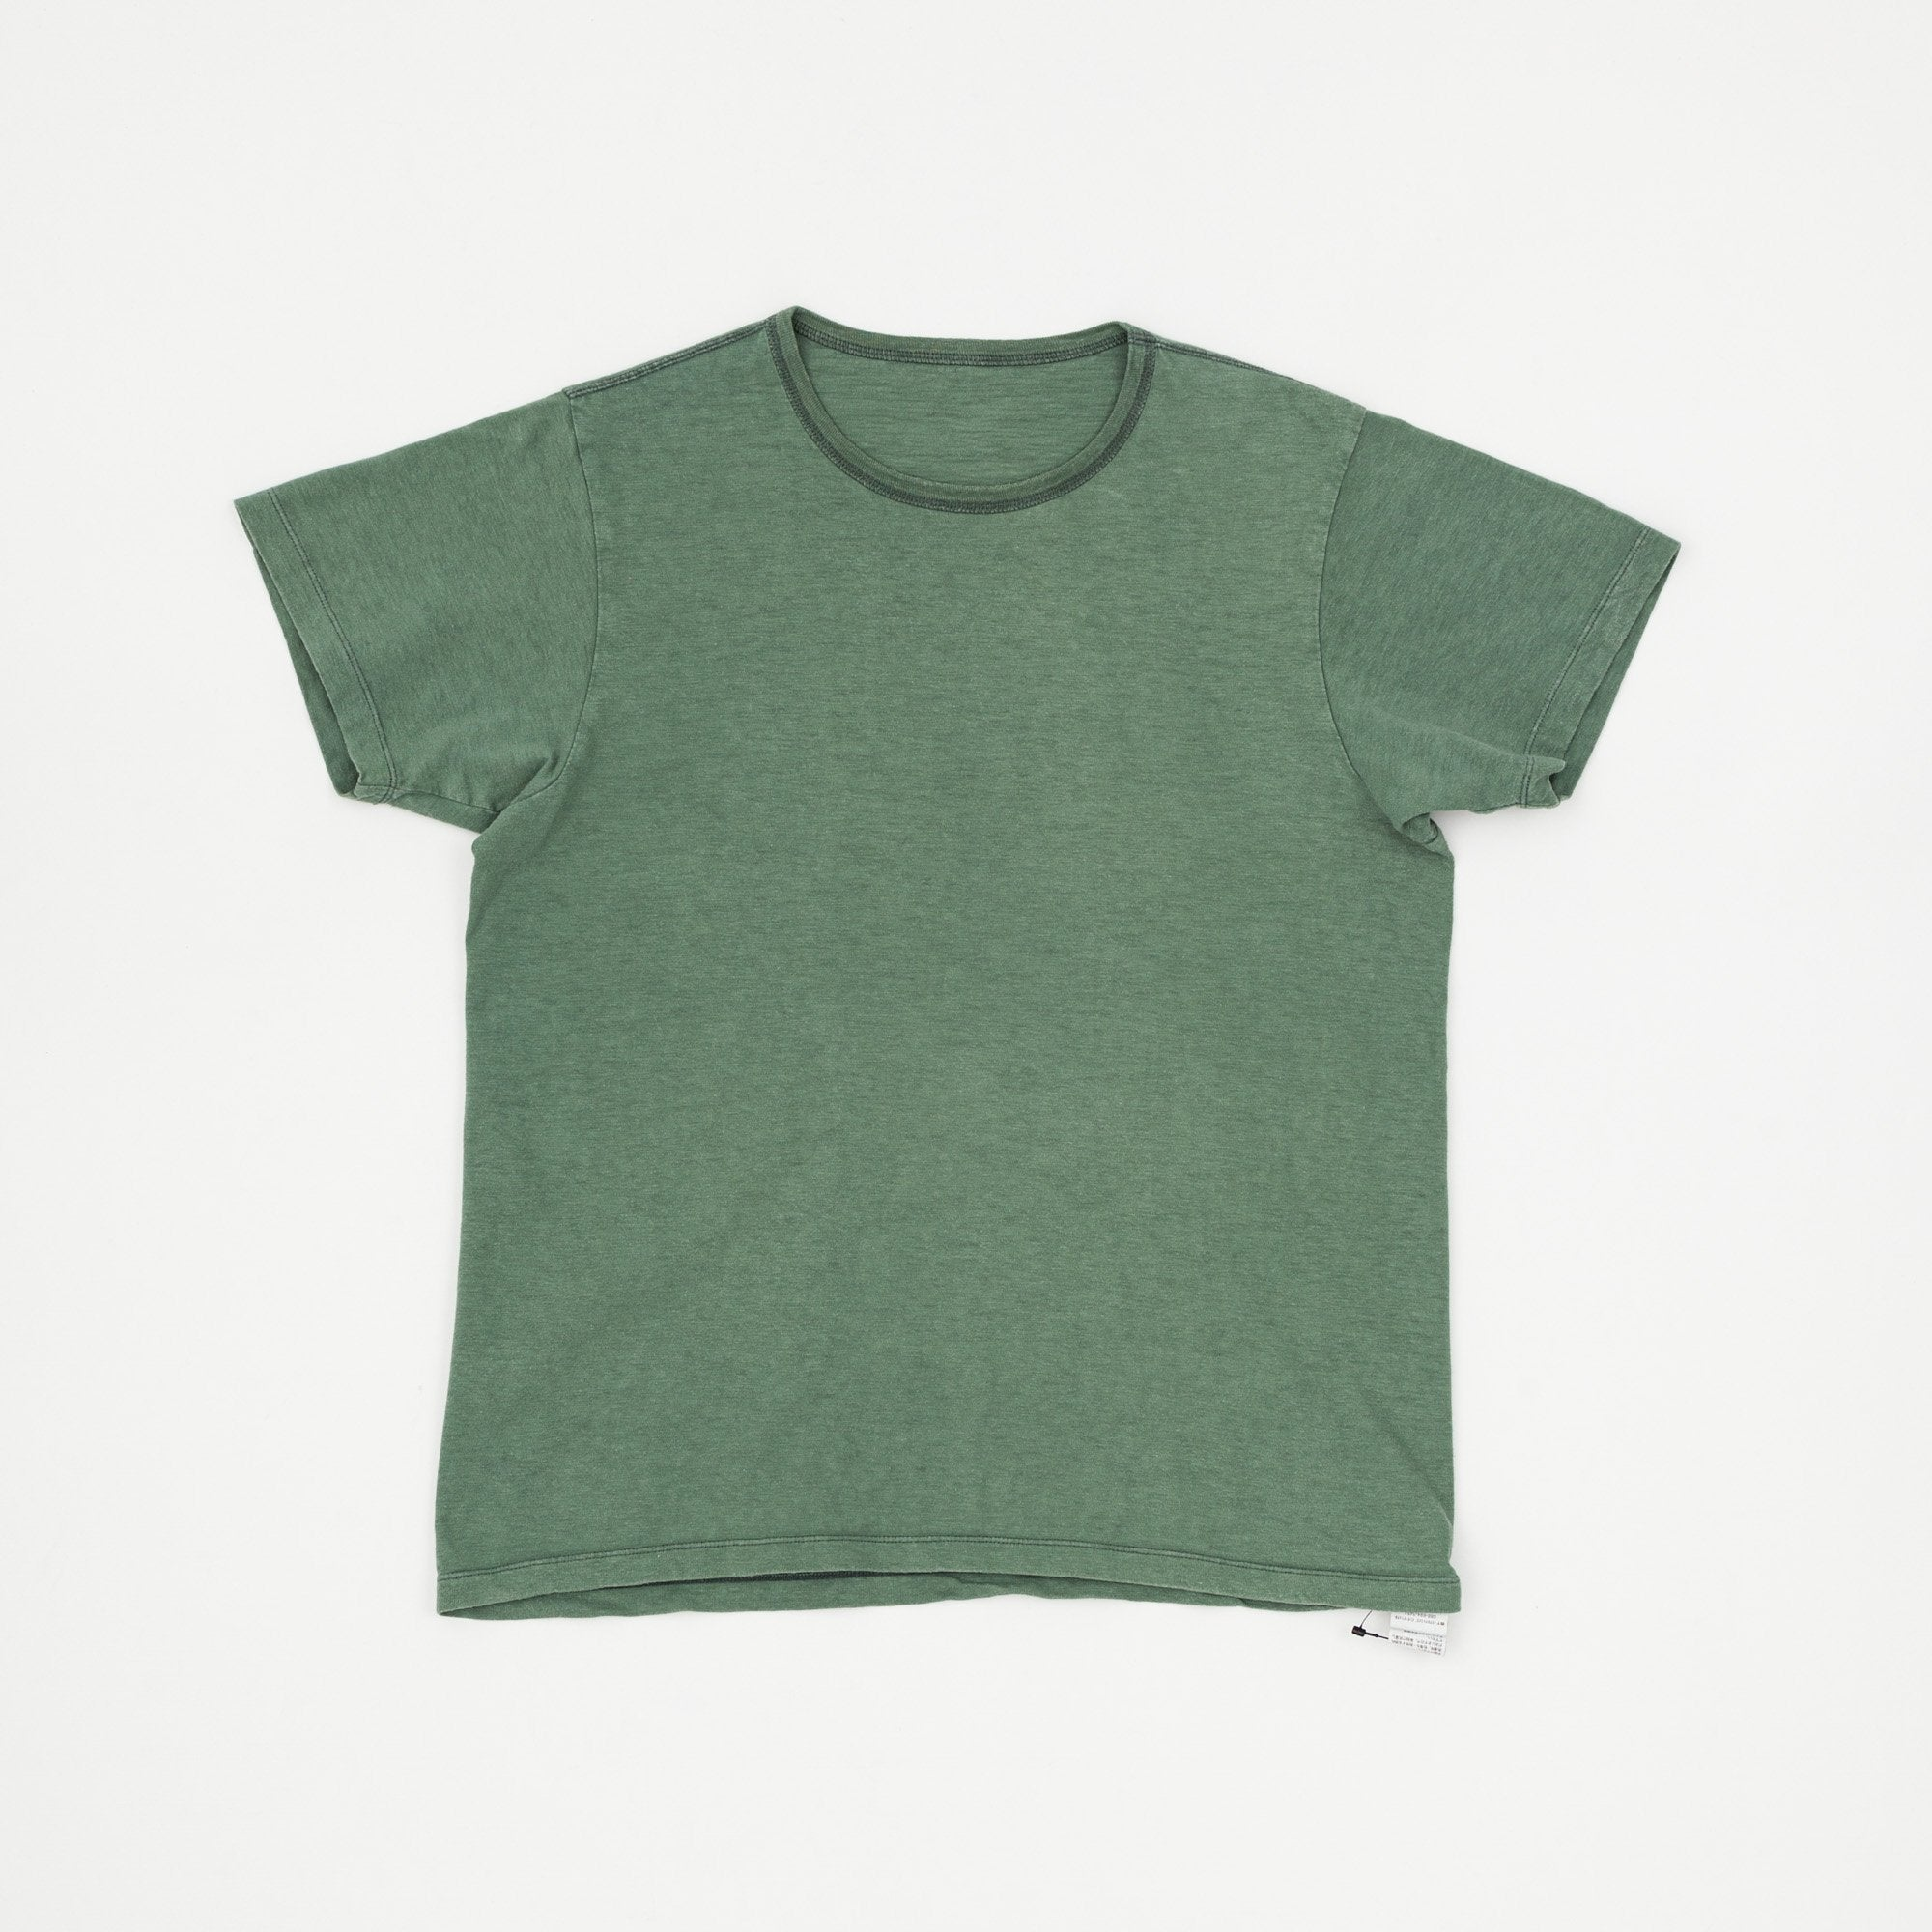 The Real McCoy's Summer Cotton Undershirt